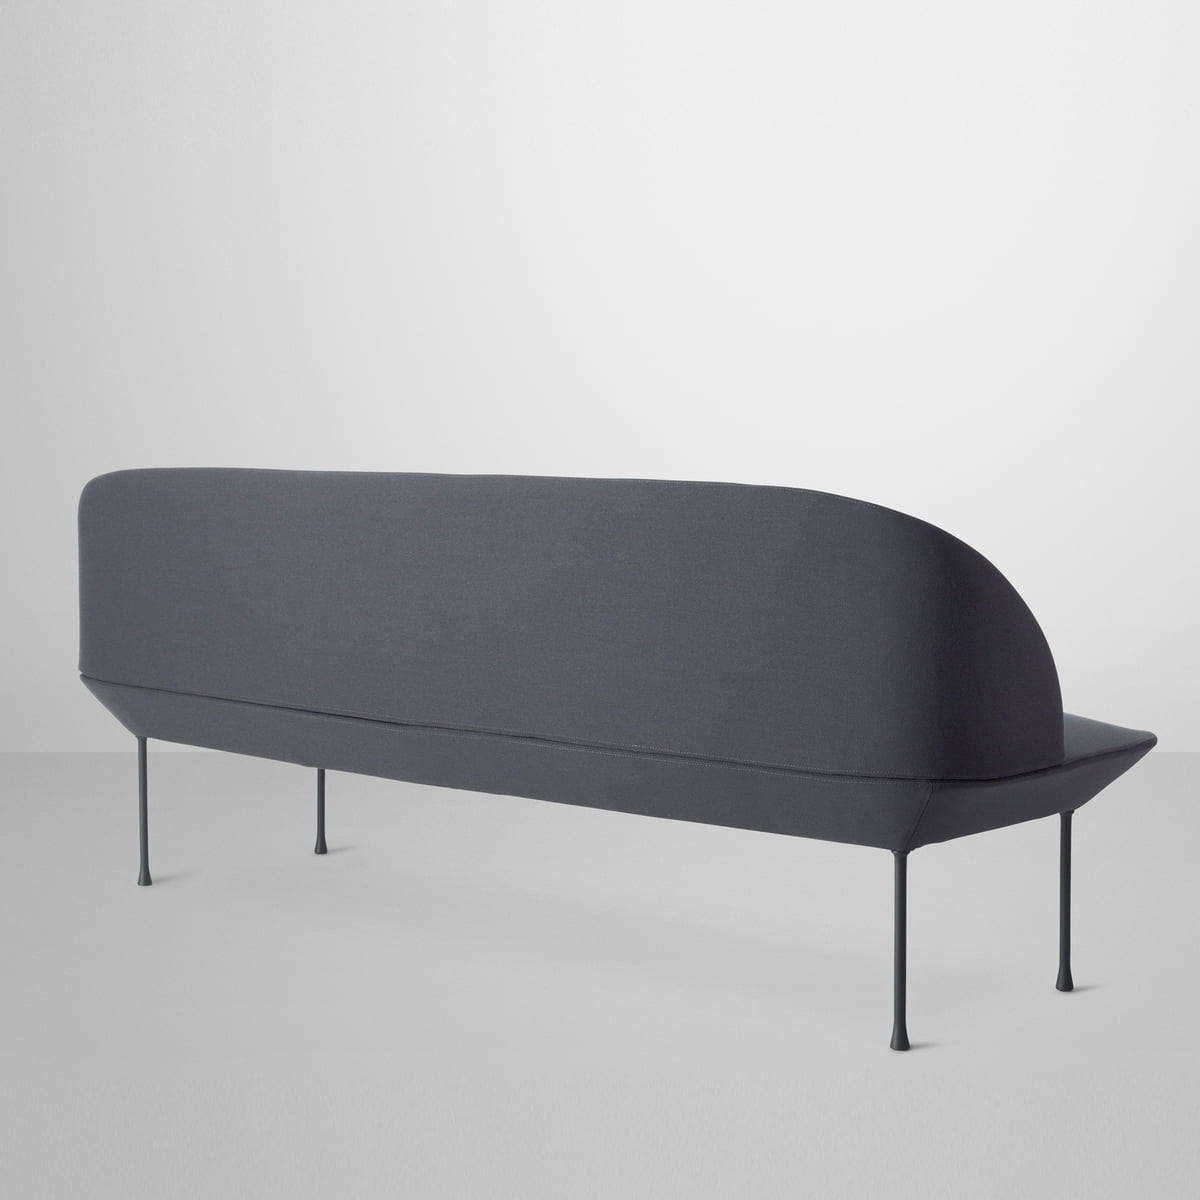 the oslo sofa by muuto in the shop. Black Bedroom Furniture Sets. Home Design Ideas